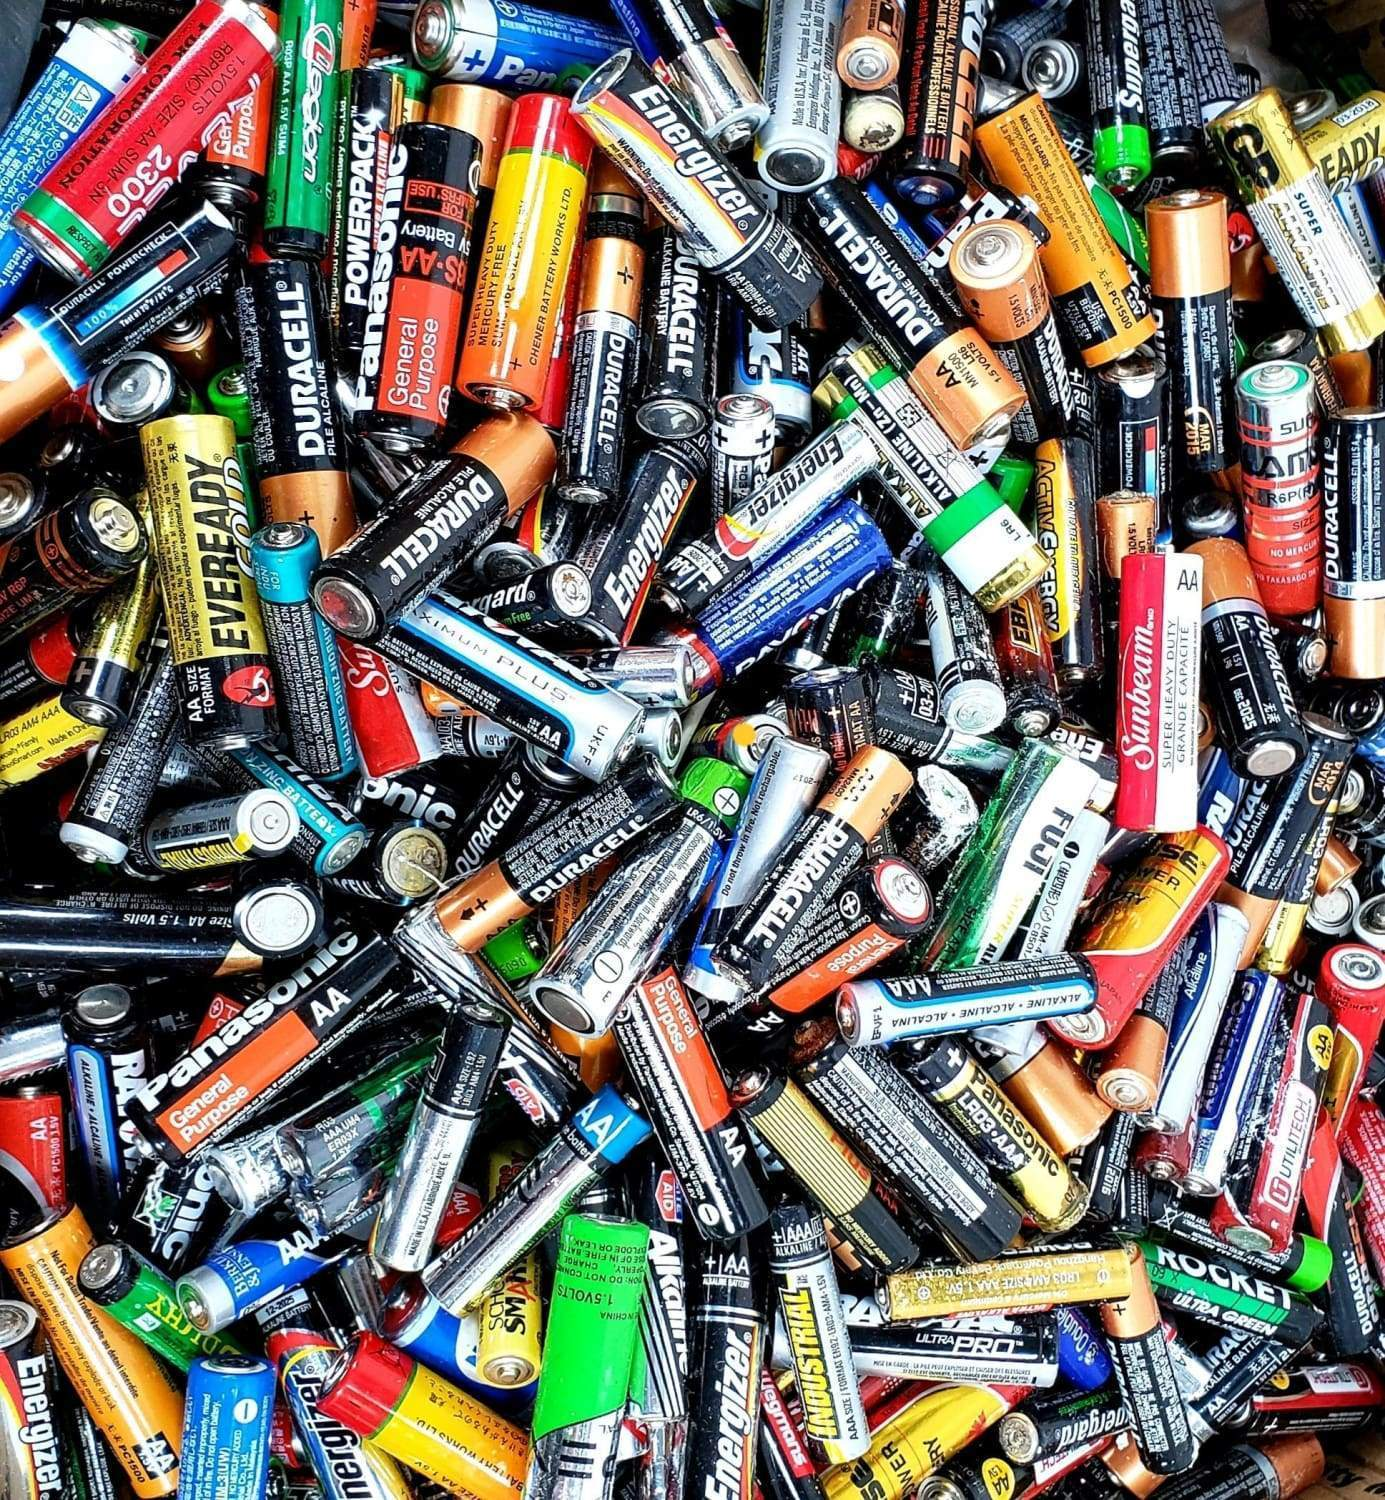 The Ultimate Guide to Recycling Batteries in 2018